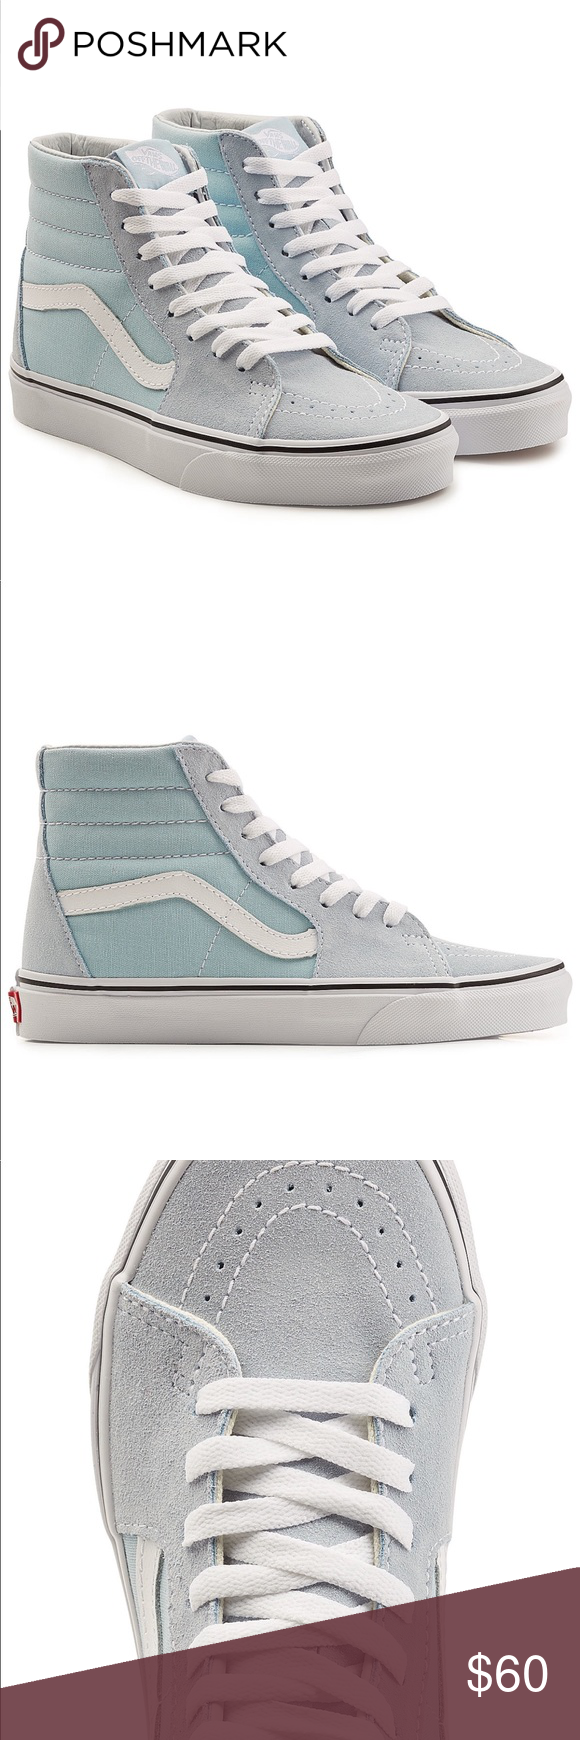 d7bdac11dd9ab2 Vans Sk8-Hi Sky Blue High Top Sneakers Awesome condition! As shown ...